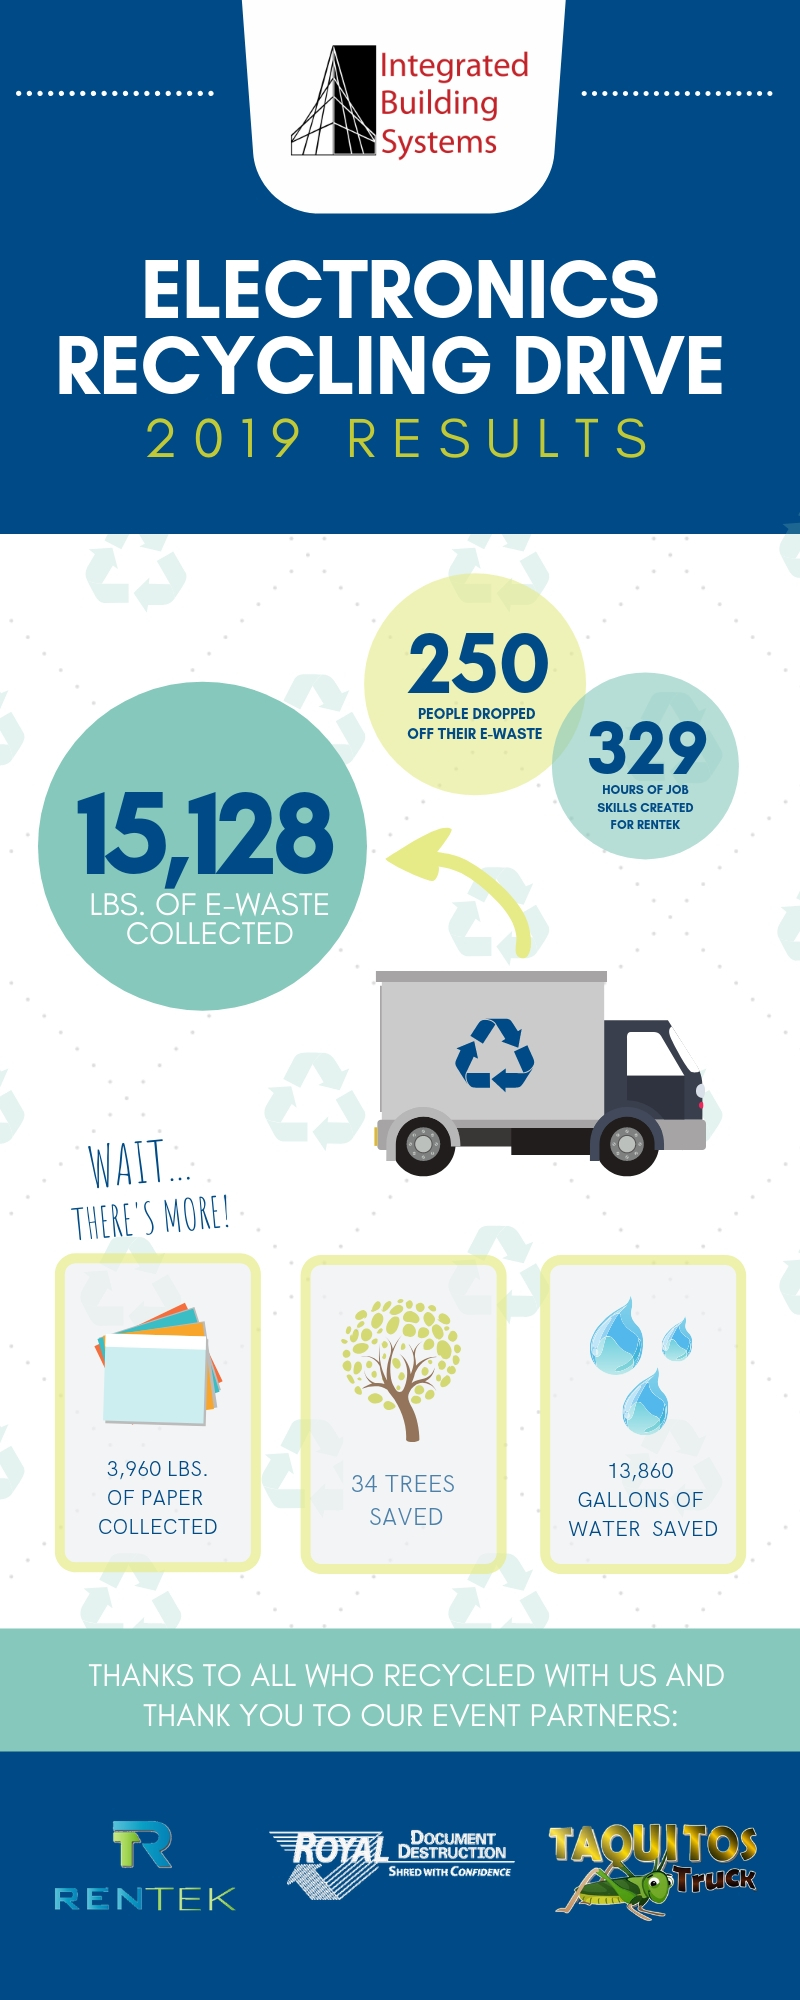 Earth Day Ewaste Drive results 2019.jpg